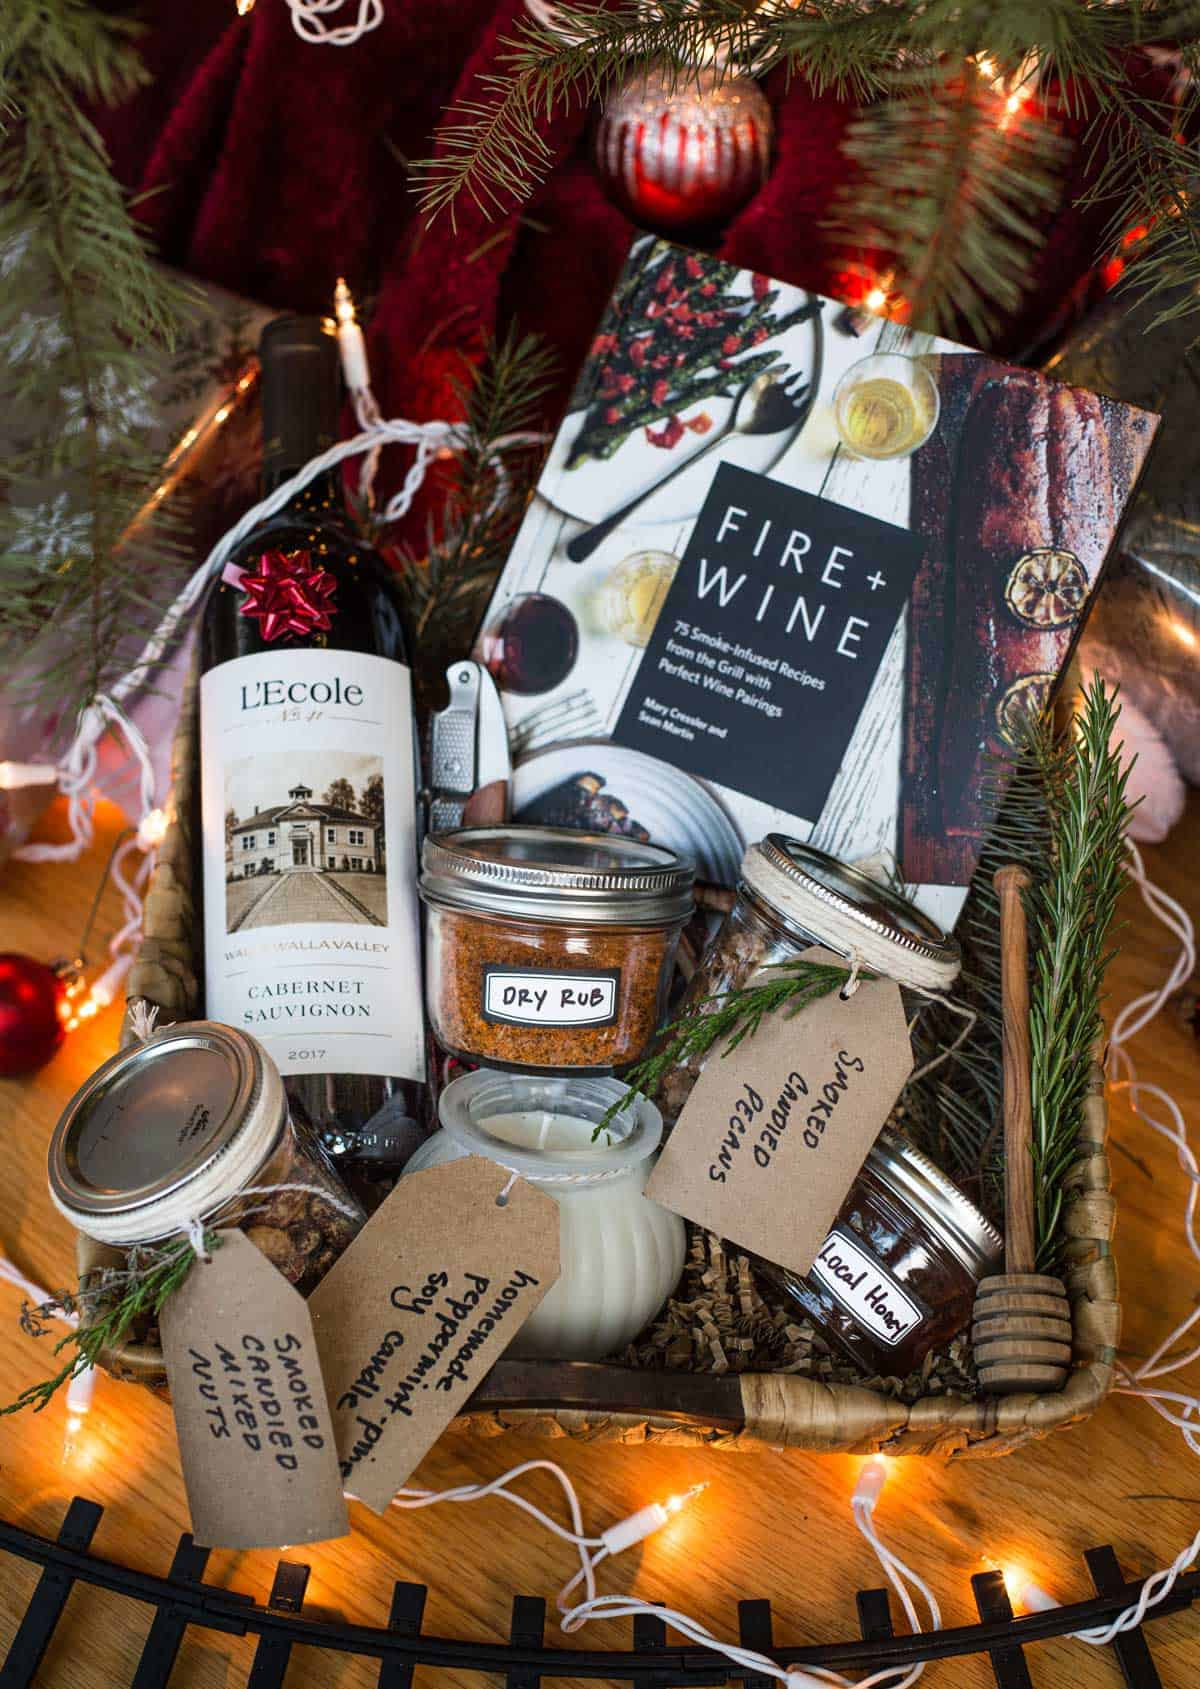 A holiday gift basket filled with edible gifts including L'Ecole wine, Fire + Wine cookbook, smoked mixed nuts, and other edible holiday gifts